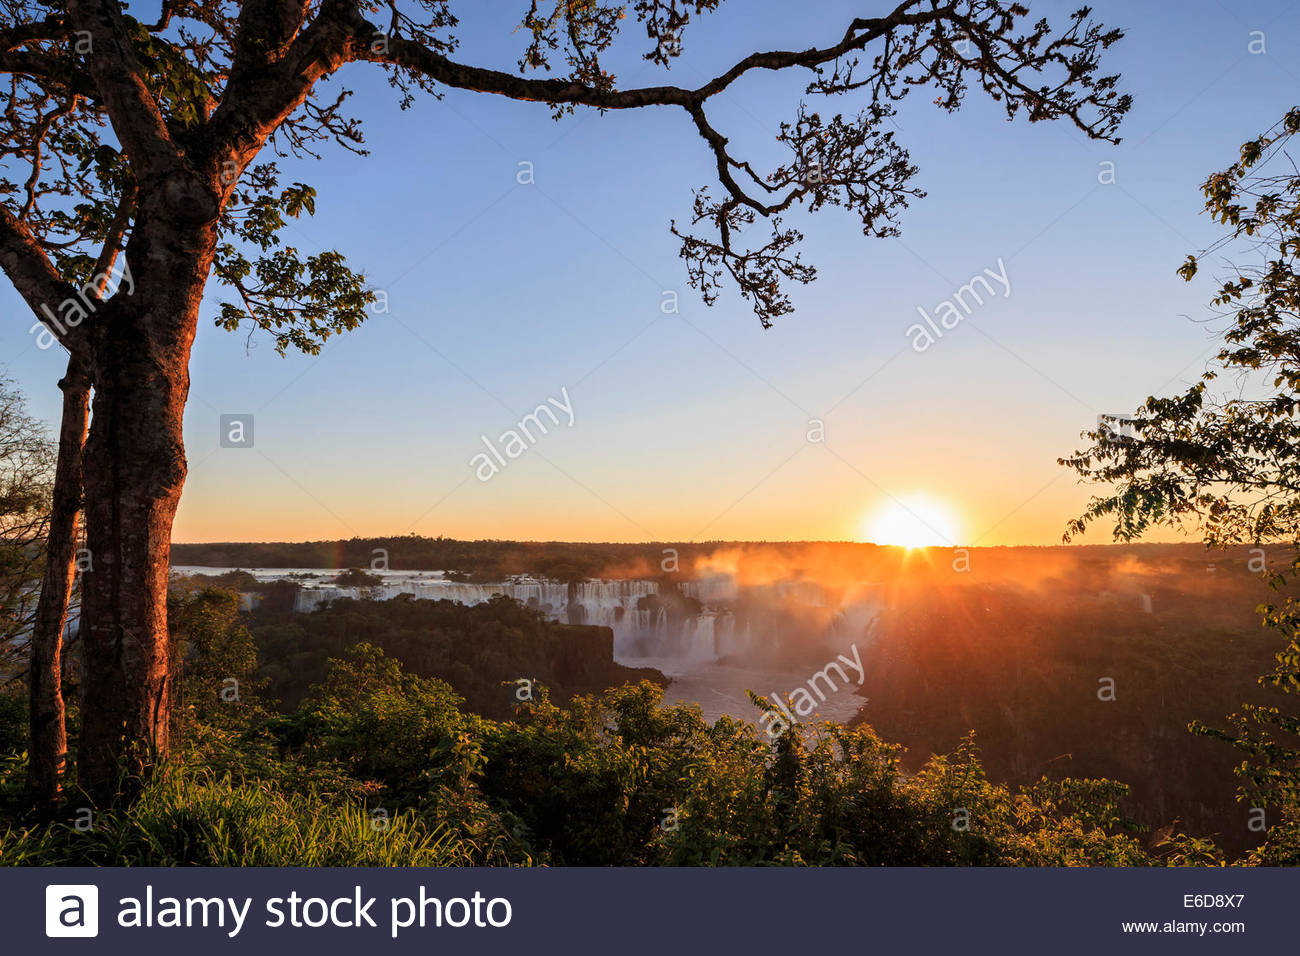 South America, Brazil, Parana, Iguazu National Park, Iguazu Falls against the evening sun - Stock Image